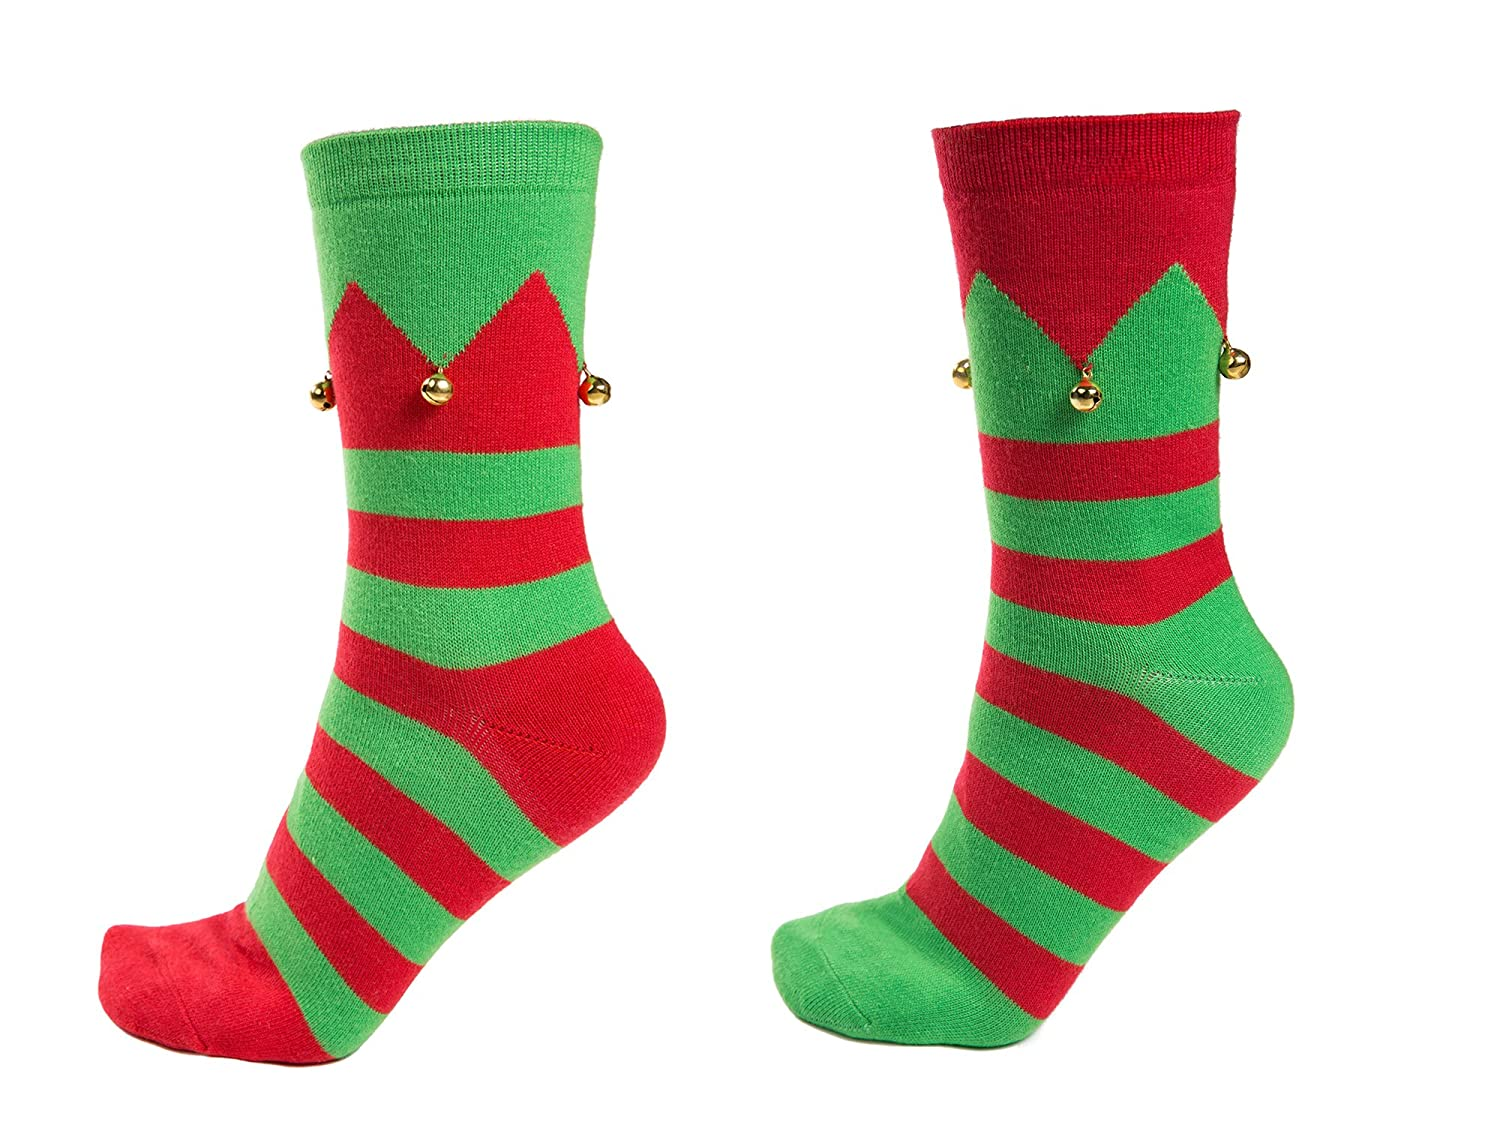 Amazon.com: Christmas Elf Socks with Jingle Bells, 2 Pair, Stretch ...